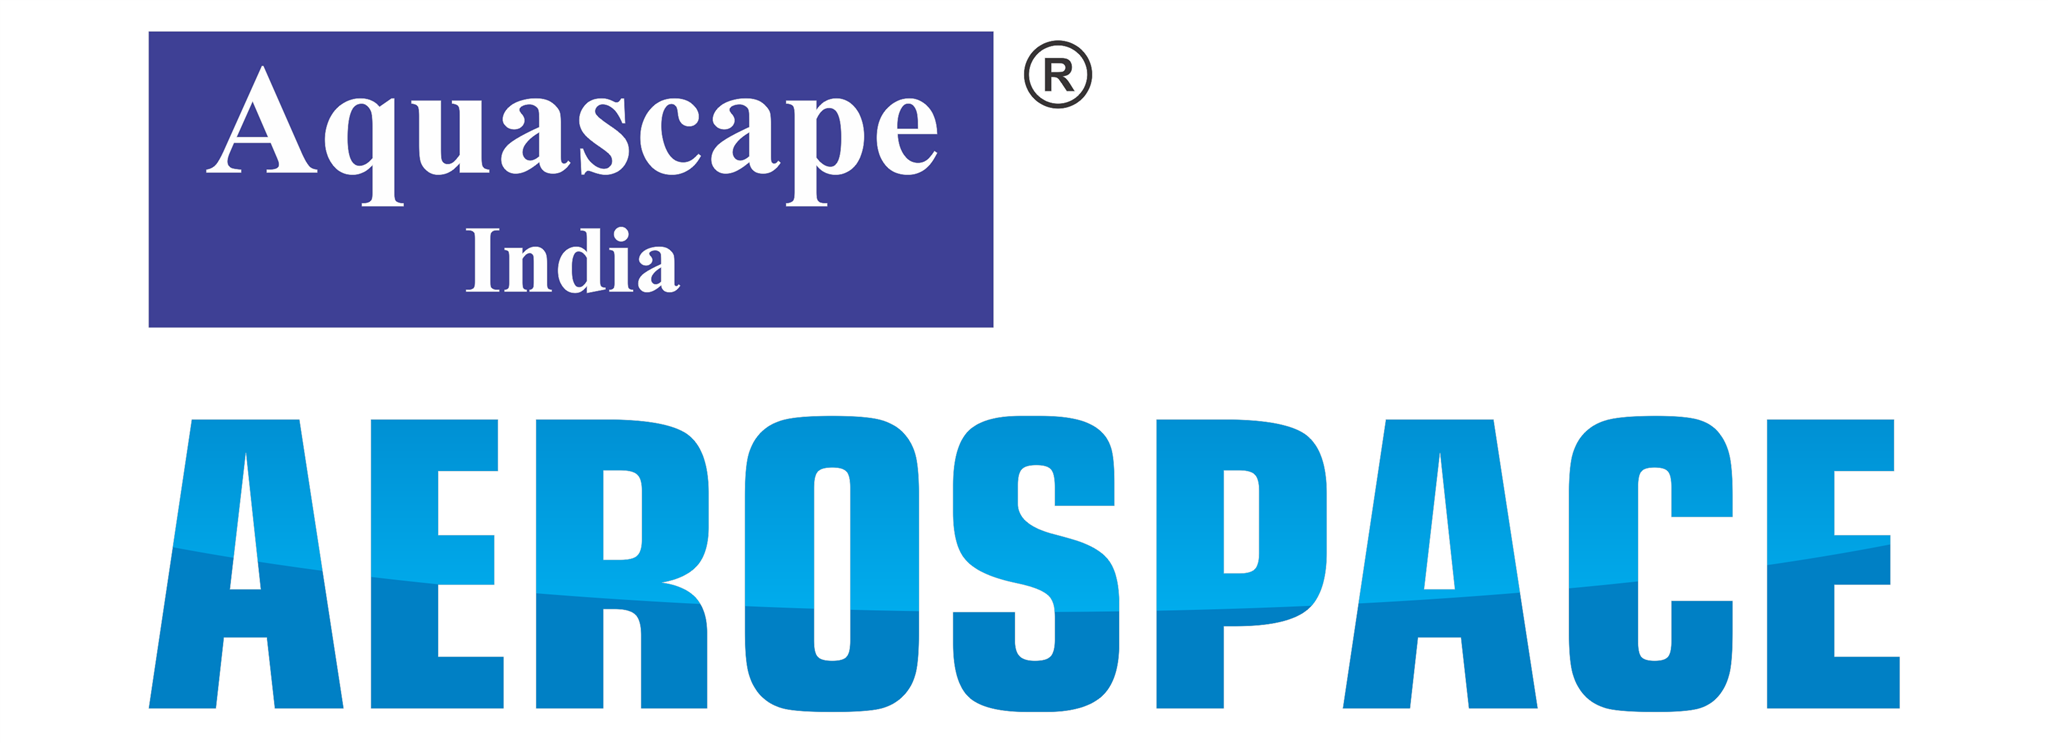 Aquascape Engineers Pvt Ltd